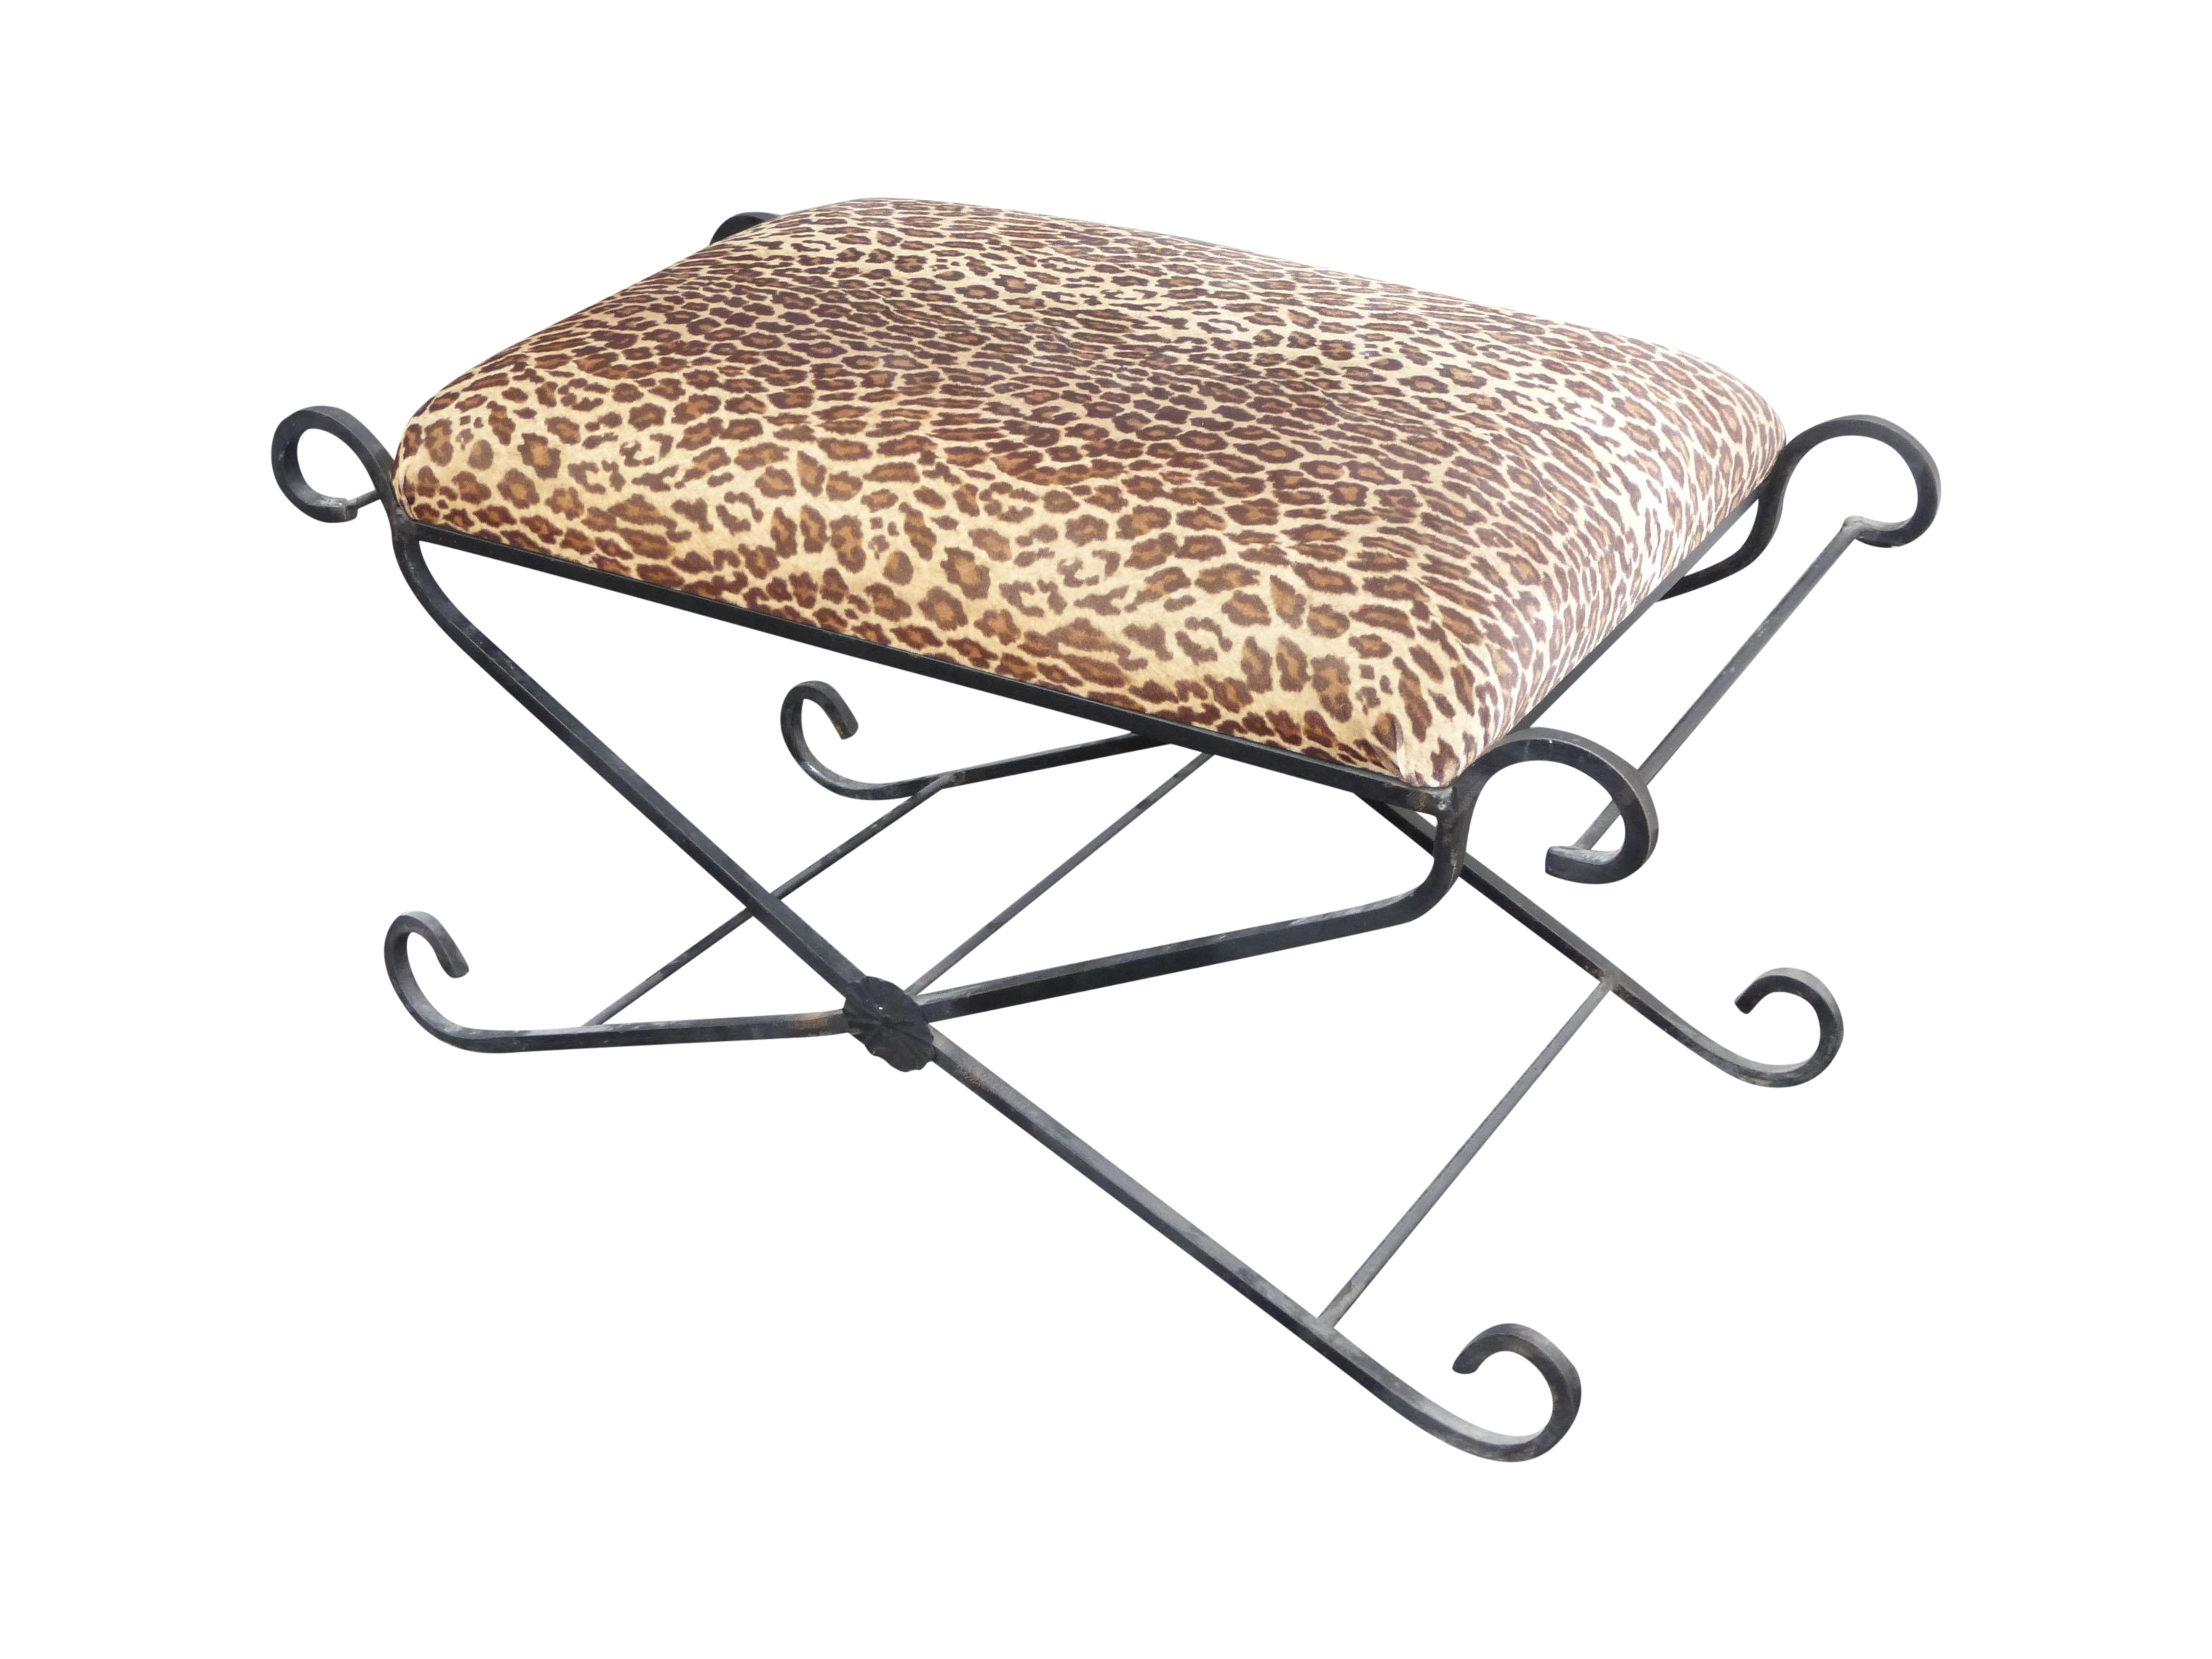 Wrought Iron Vanity vintage leopard print wrought iron vanity bench | chairish